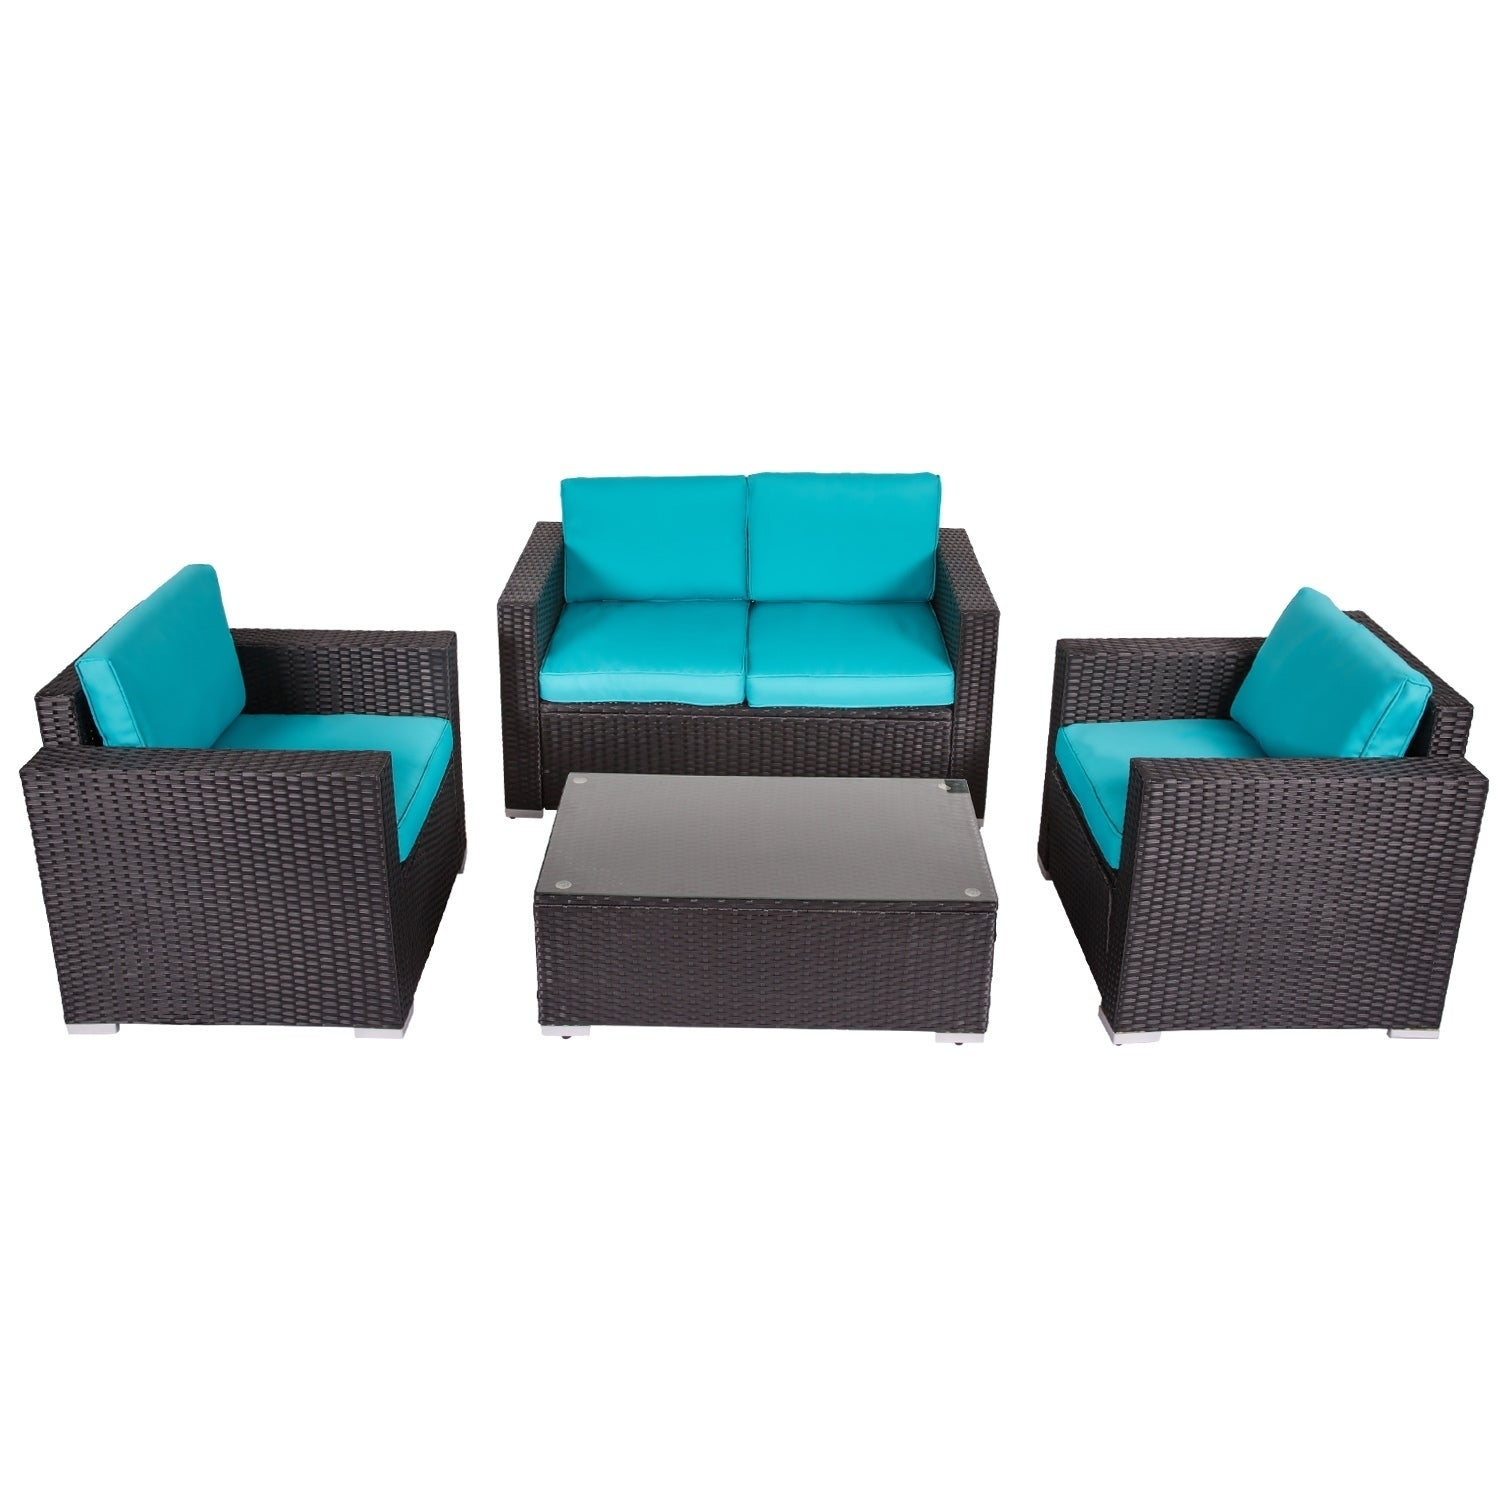 Shop Kinbor 4-piece Outdoor Patio Furniture Set Wicker Chat Set ...